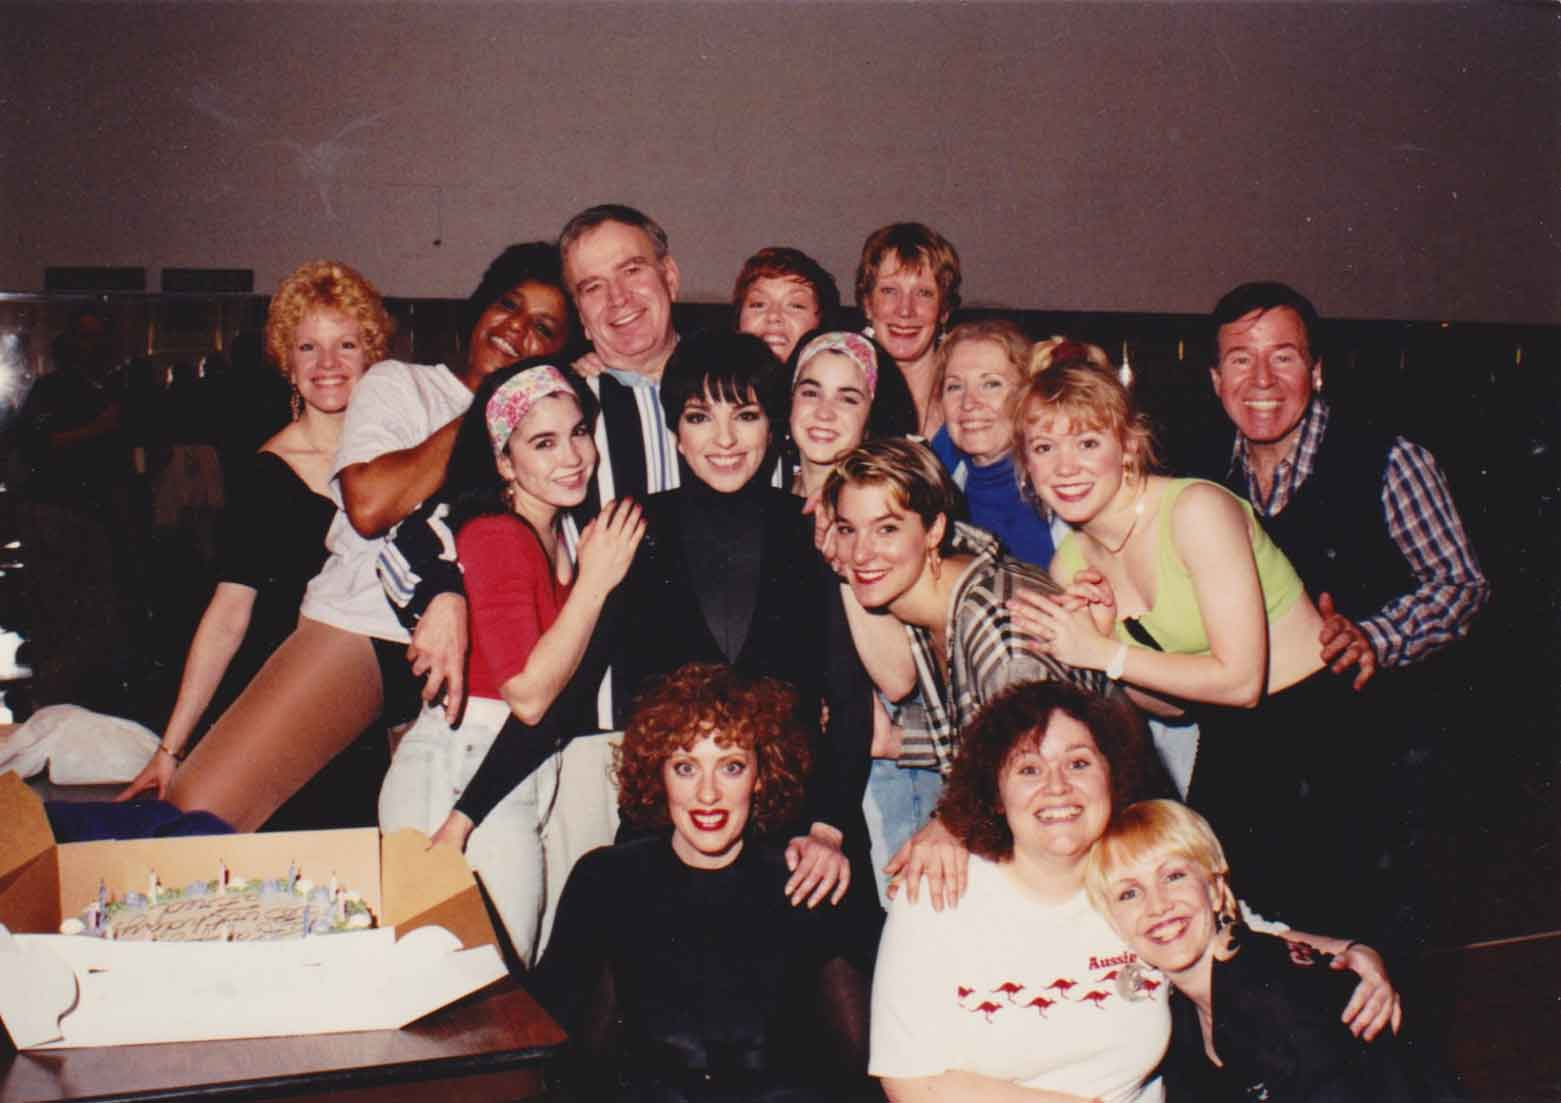 Liza, Stro, Fred Ebb, Peter Howard and the Demon Divas backstage at Radio City Music Hall. Everyone is hugging and there is a cake.